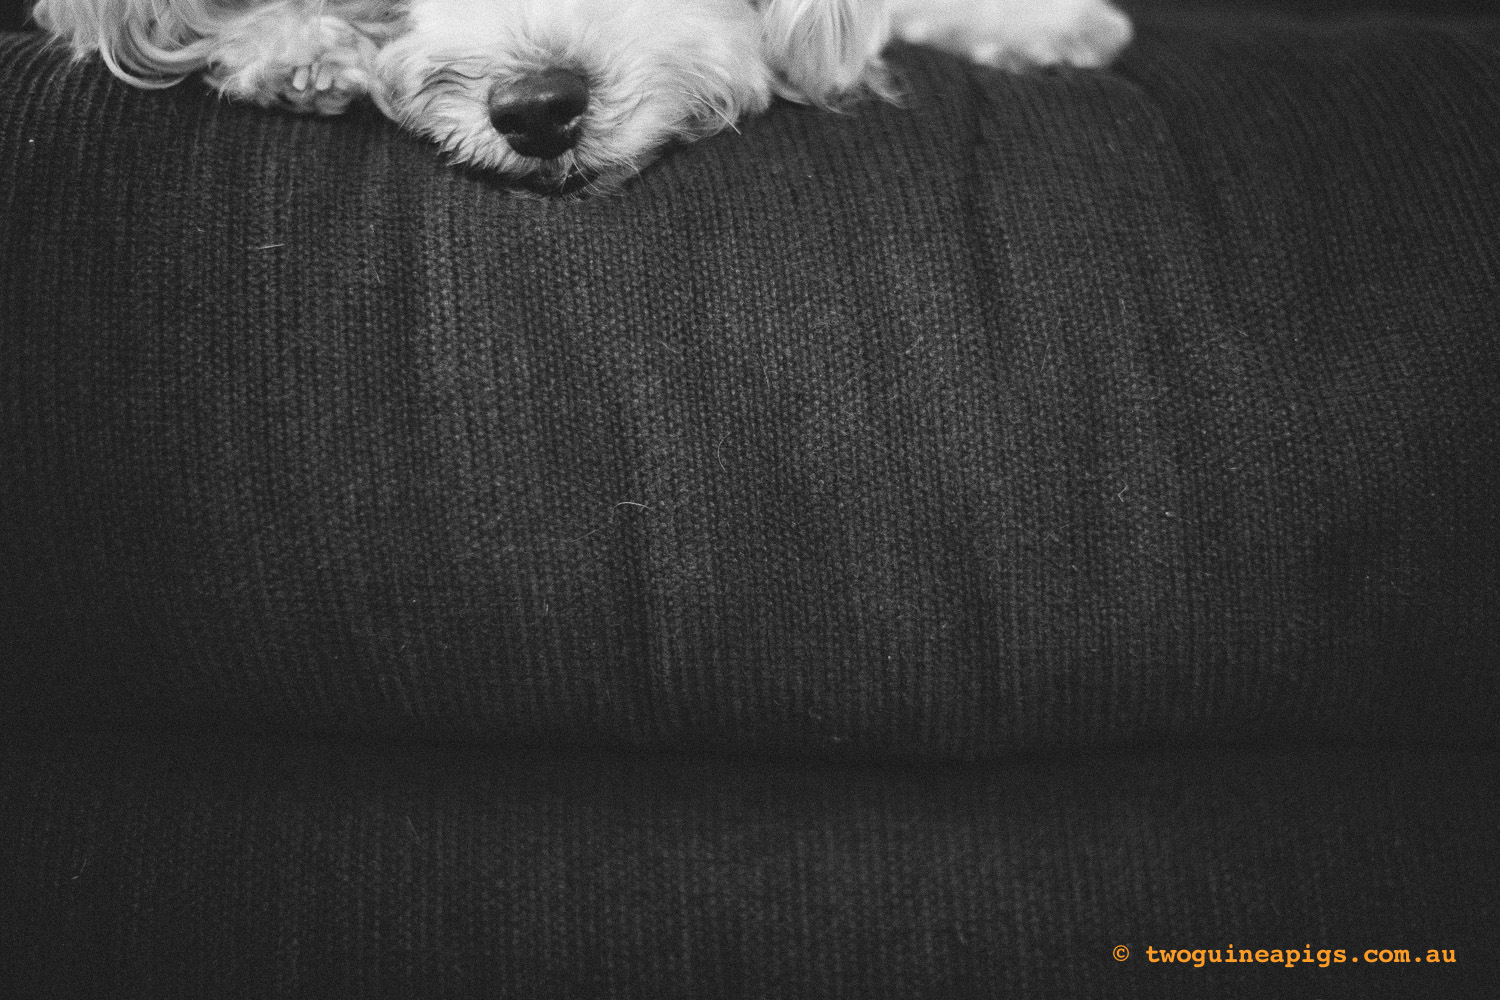 twoguineapigs_mozart-squarespace-11.jpg